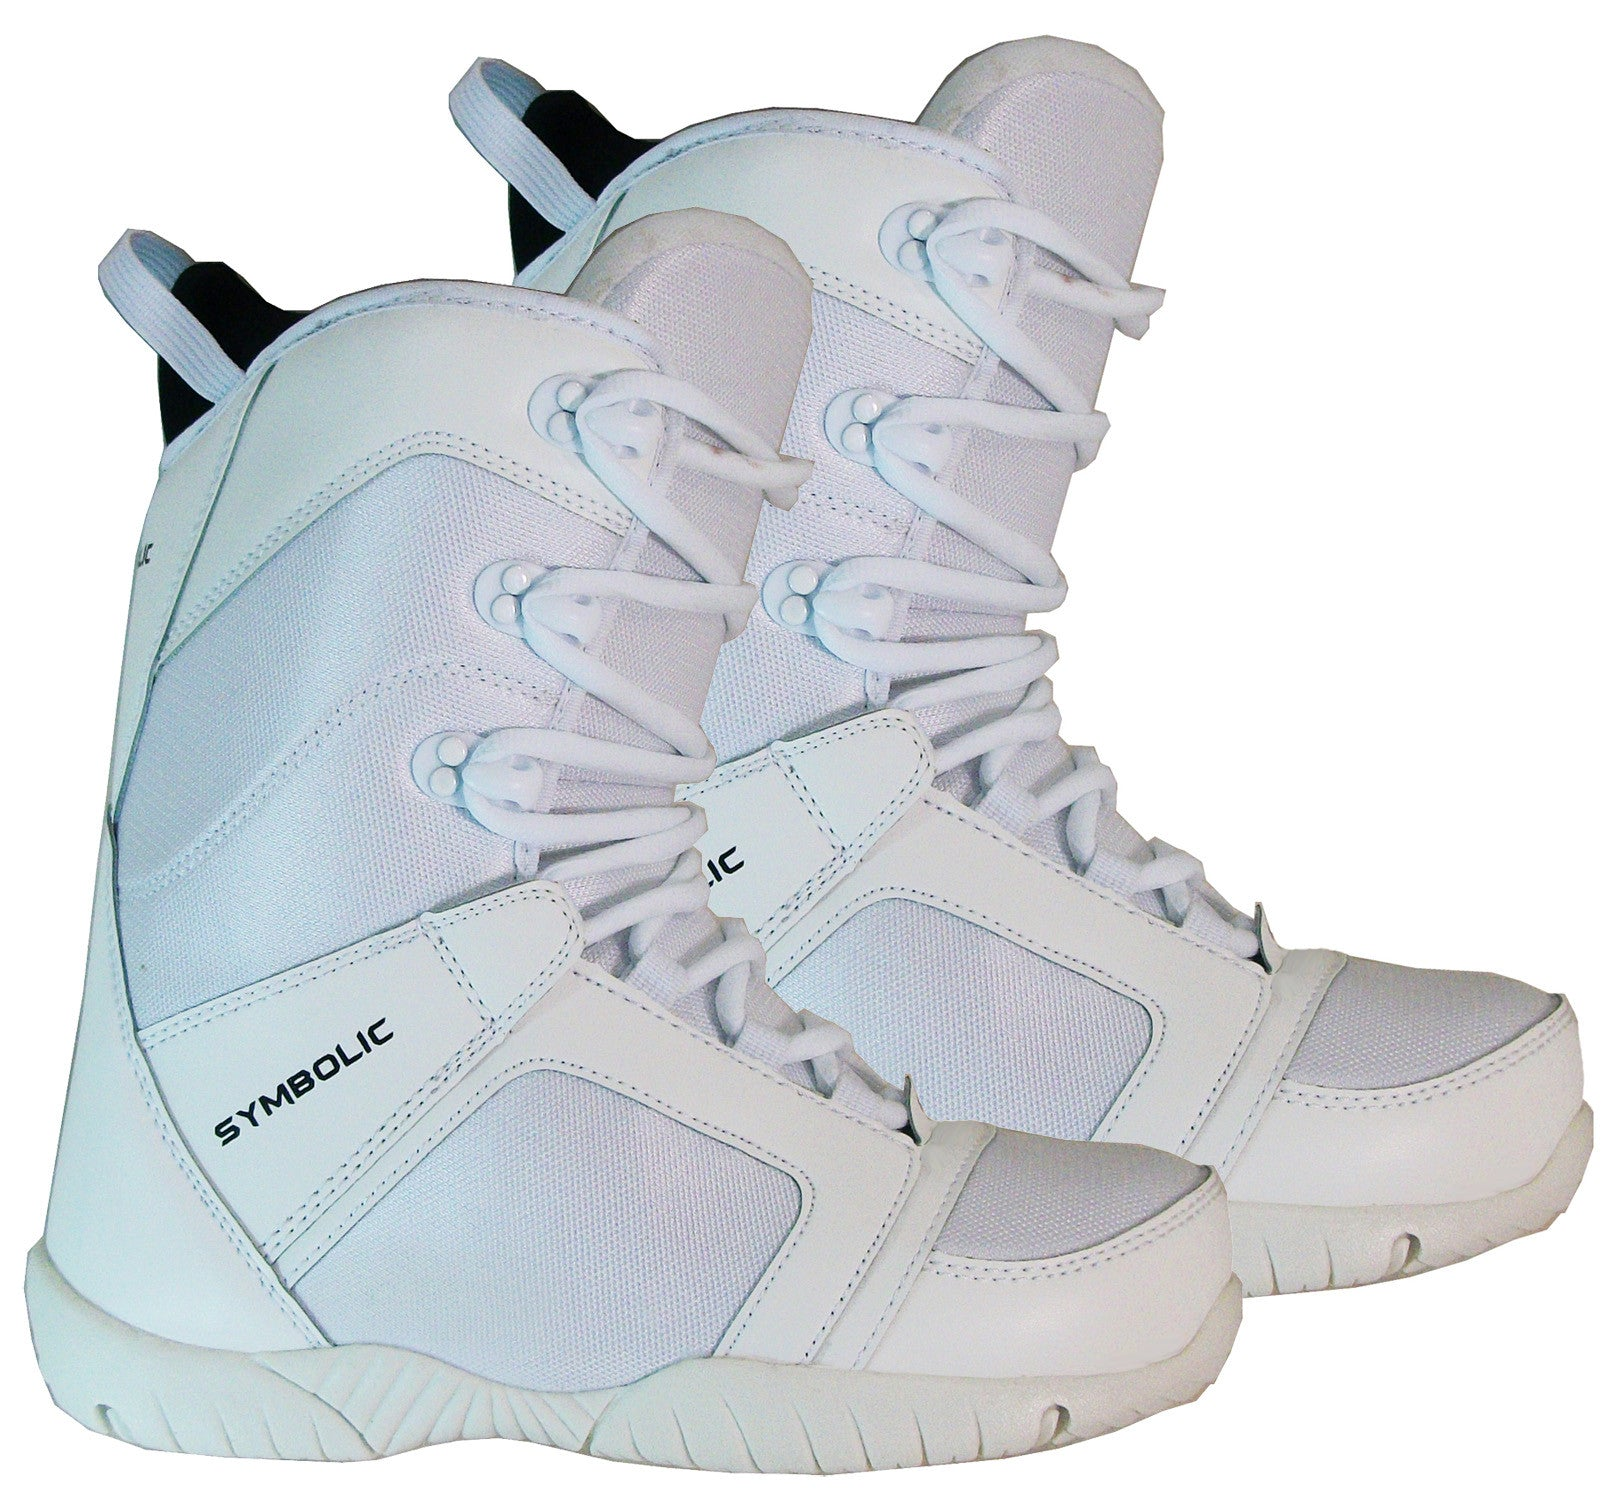 Symbolic White-Ultra Light Mens Snowboard Boots Size 5,6,7,8,9